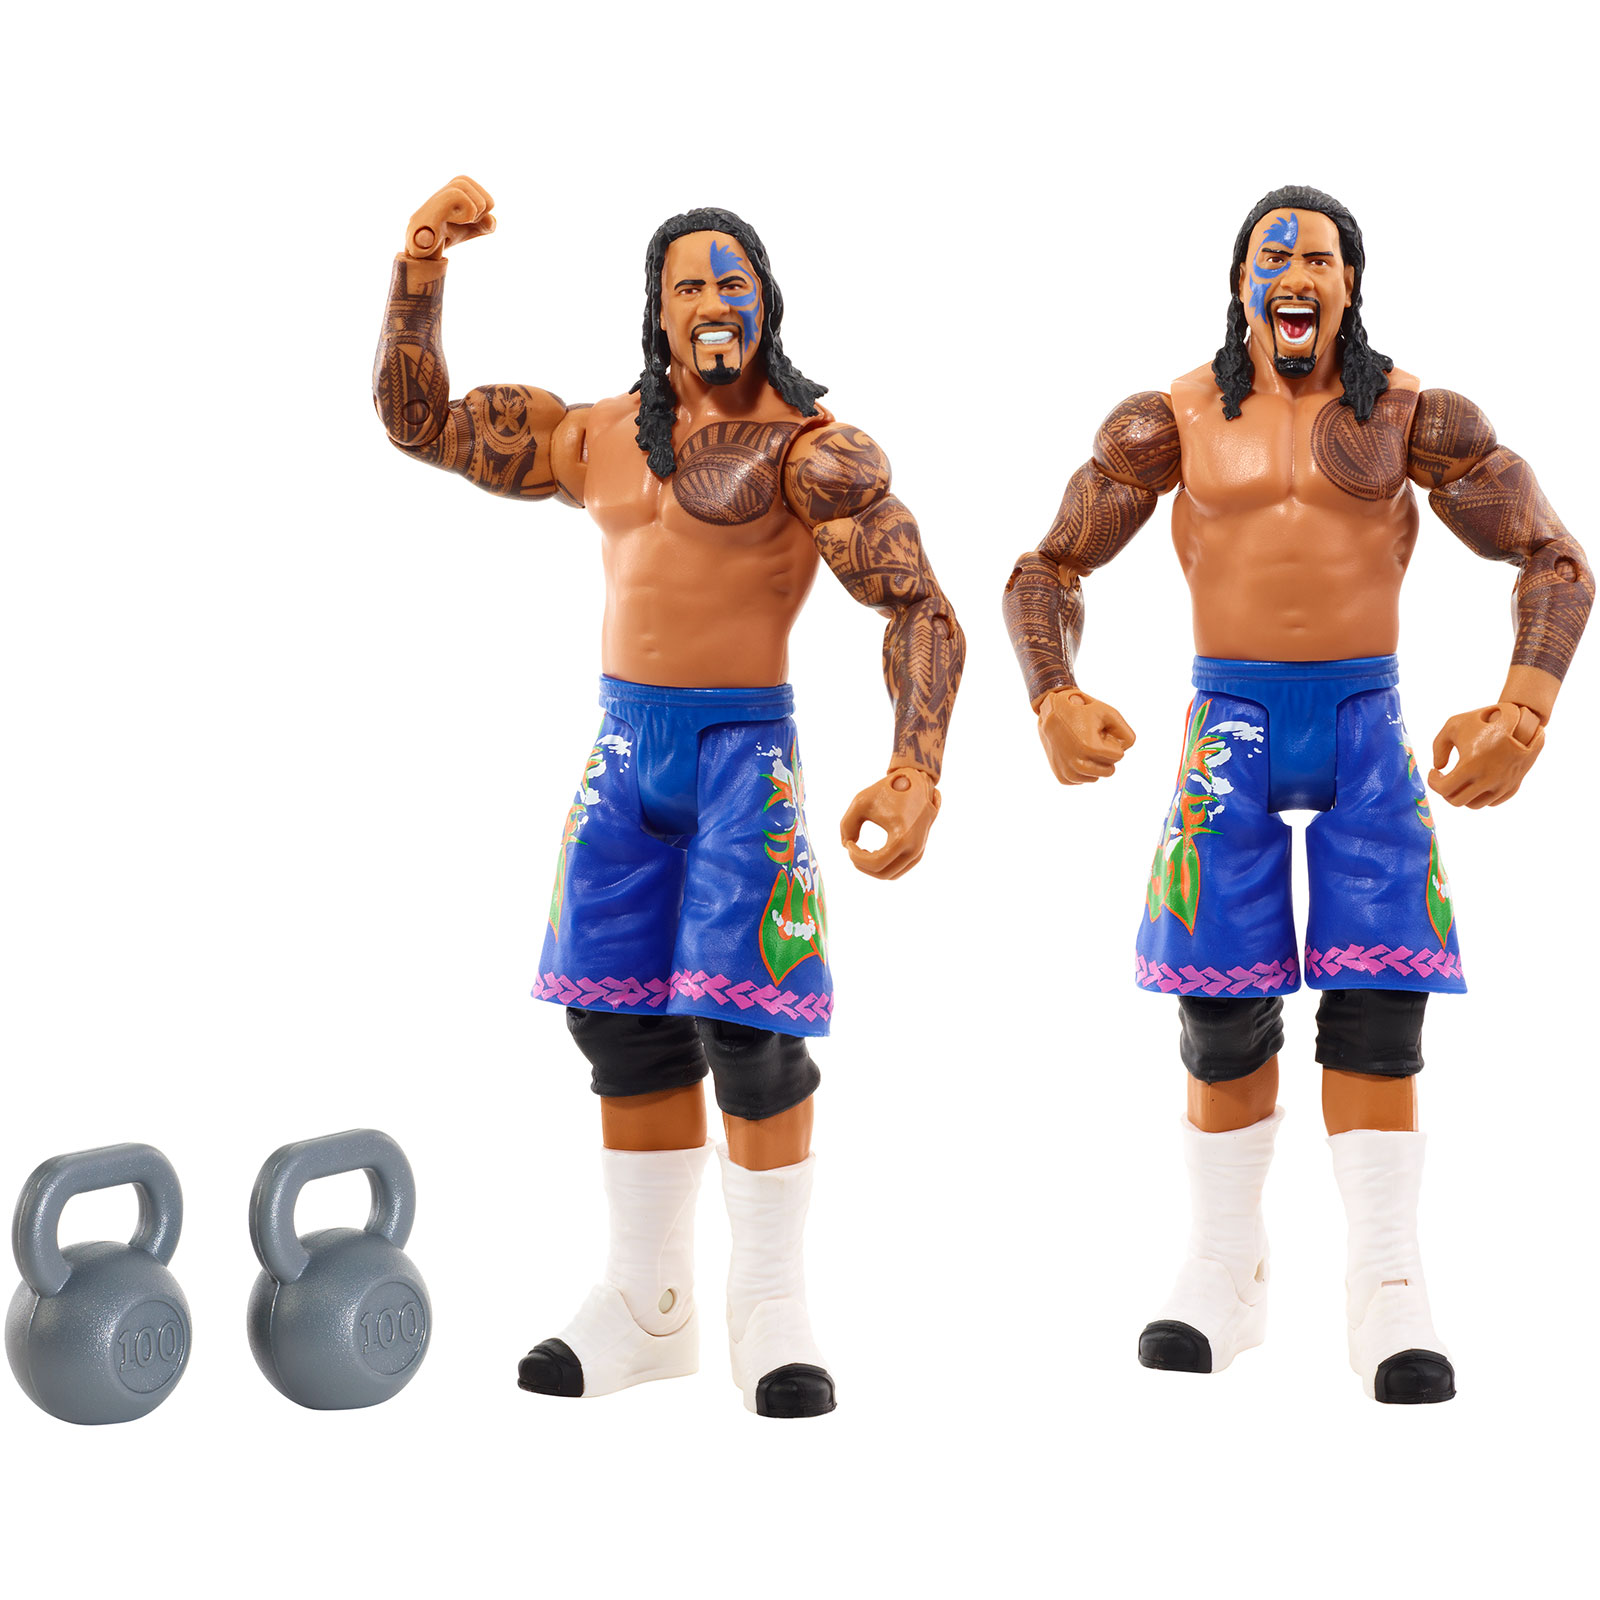 WWE Figure 2-Pack, Jey Uso & Jimmy Uso PartNumber: 004W001414304102P